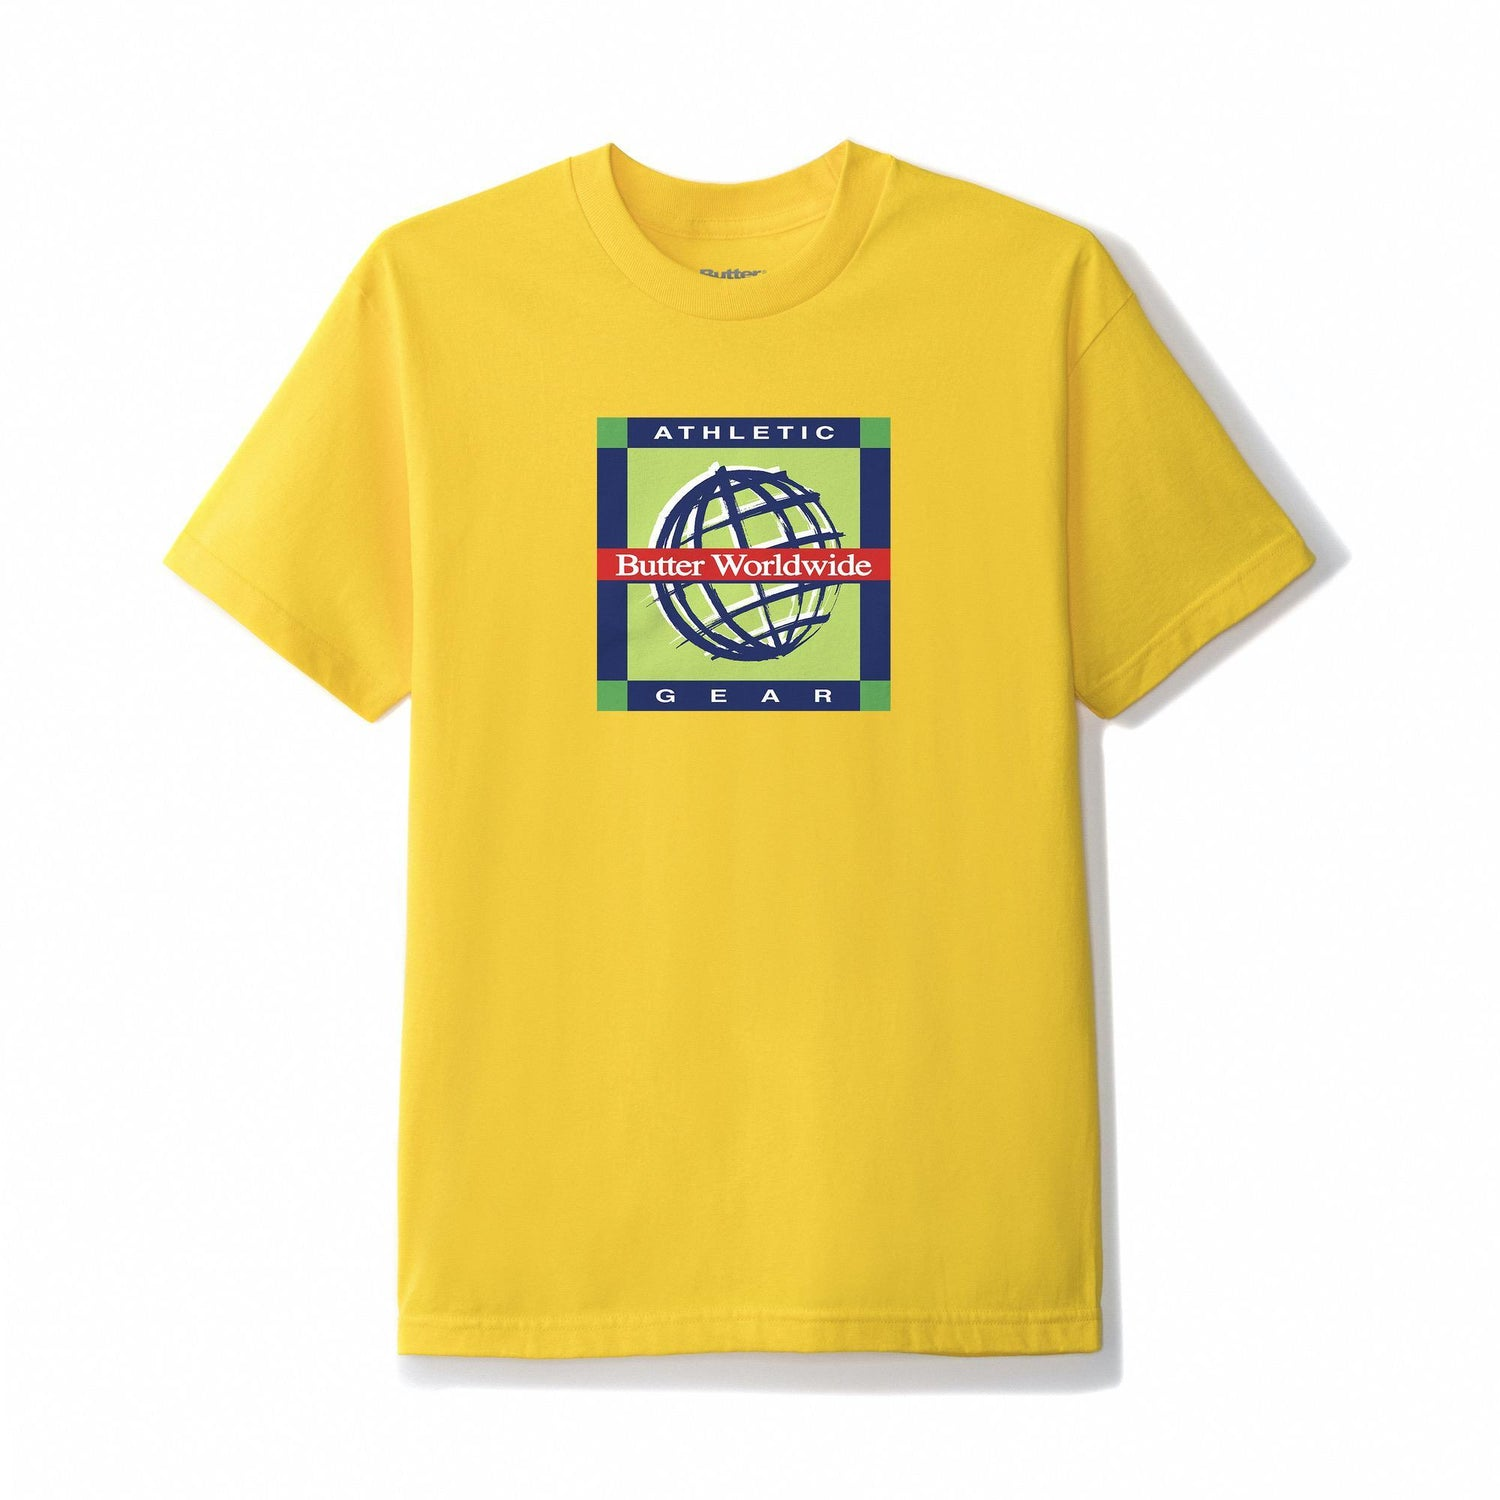 Athletic Gear Tee, Yellow